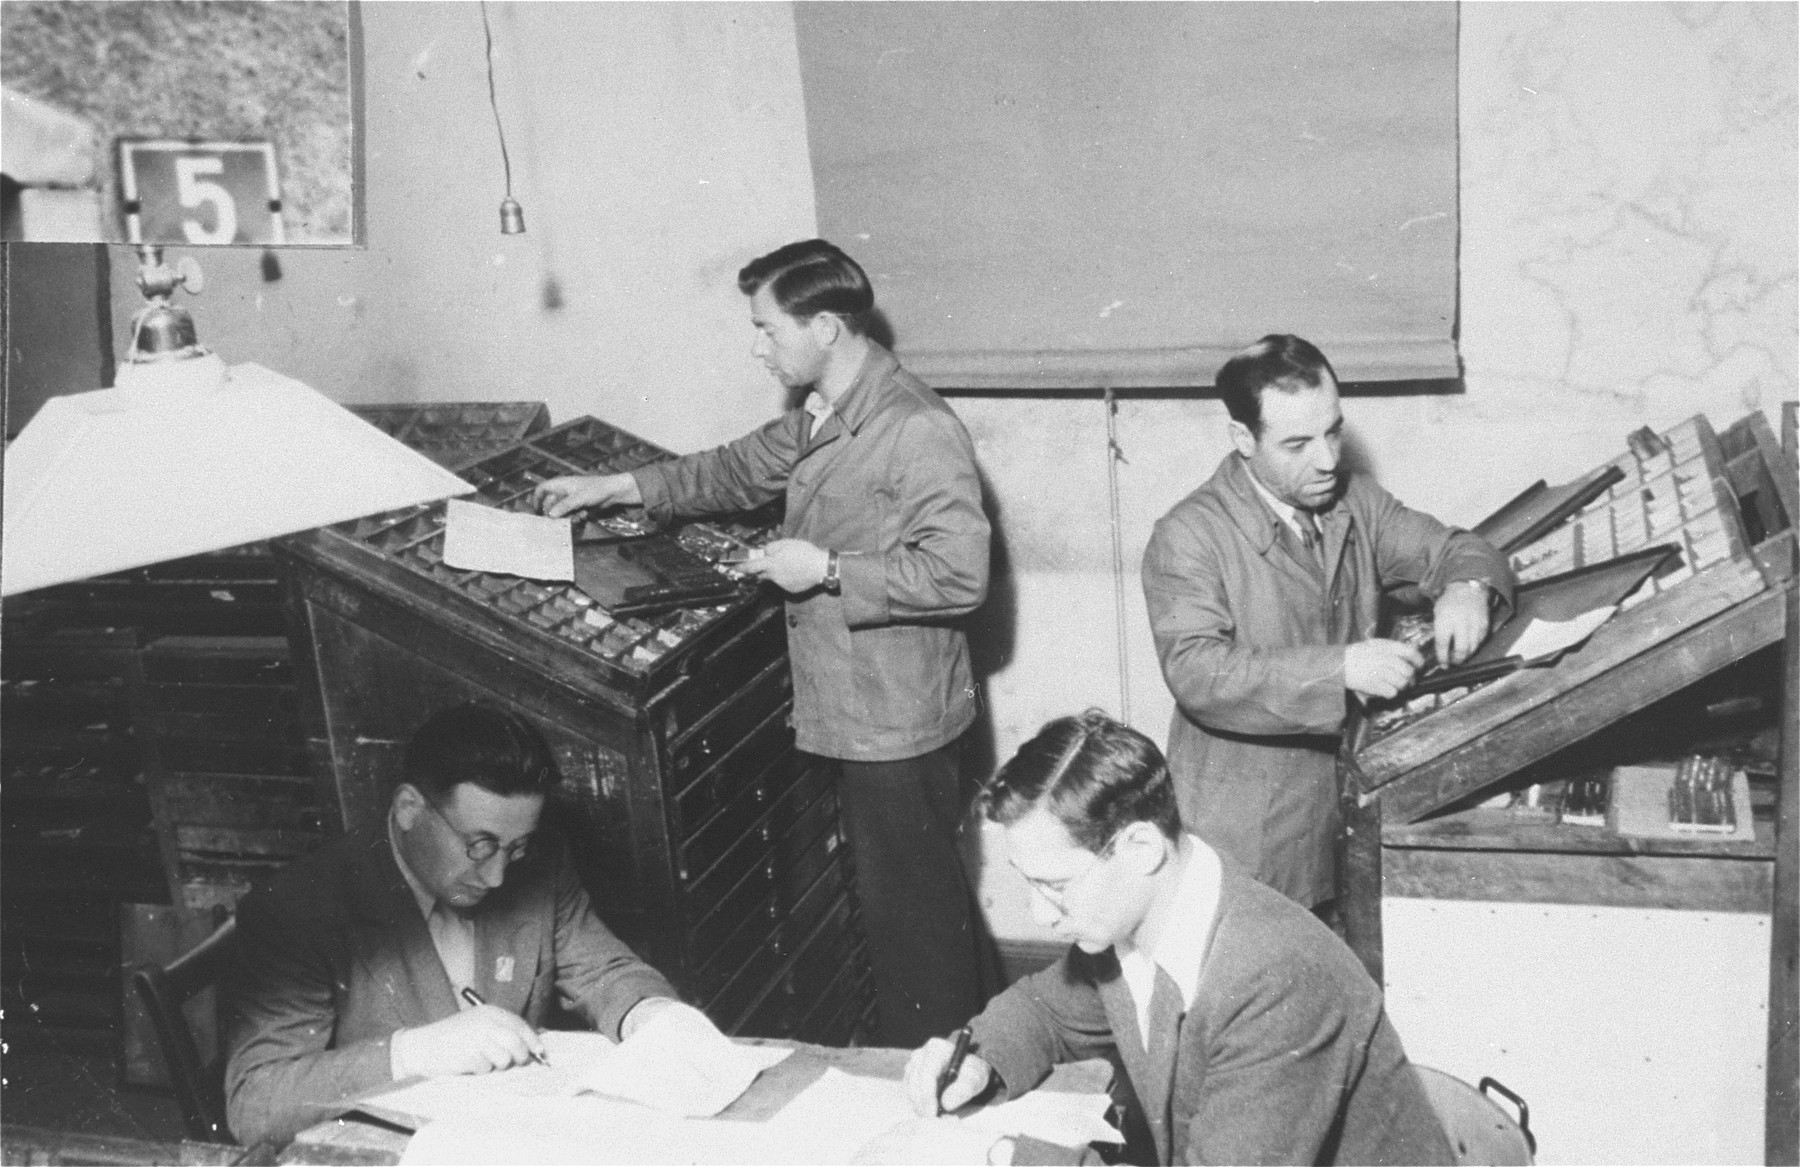 "The staff of the DP newspaper, Unterwegs [The Transient], at work in their office in the Zeilsheim displaced persons' camp.  Unterwegs was first issued under the name Unzer Mut [Our Courage] in November 1946.  It was printed in a typewritten, mimeographed form on poor quality paper.  Edited by Samma Weise, the weekly consisted of ""morale-building"" articles, camp news and gossip, discussions of Jewish problems, and poetry written in Hebrew and Yiddish.  The publishing of ""hard news"" was prohibited by American military and UNRRA regulations."